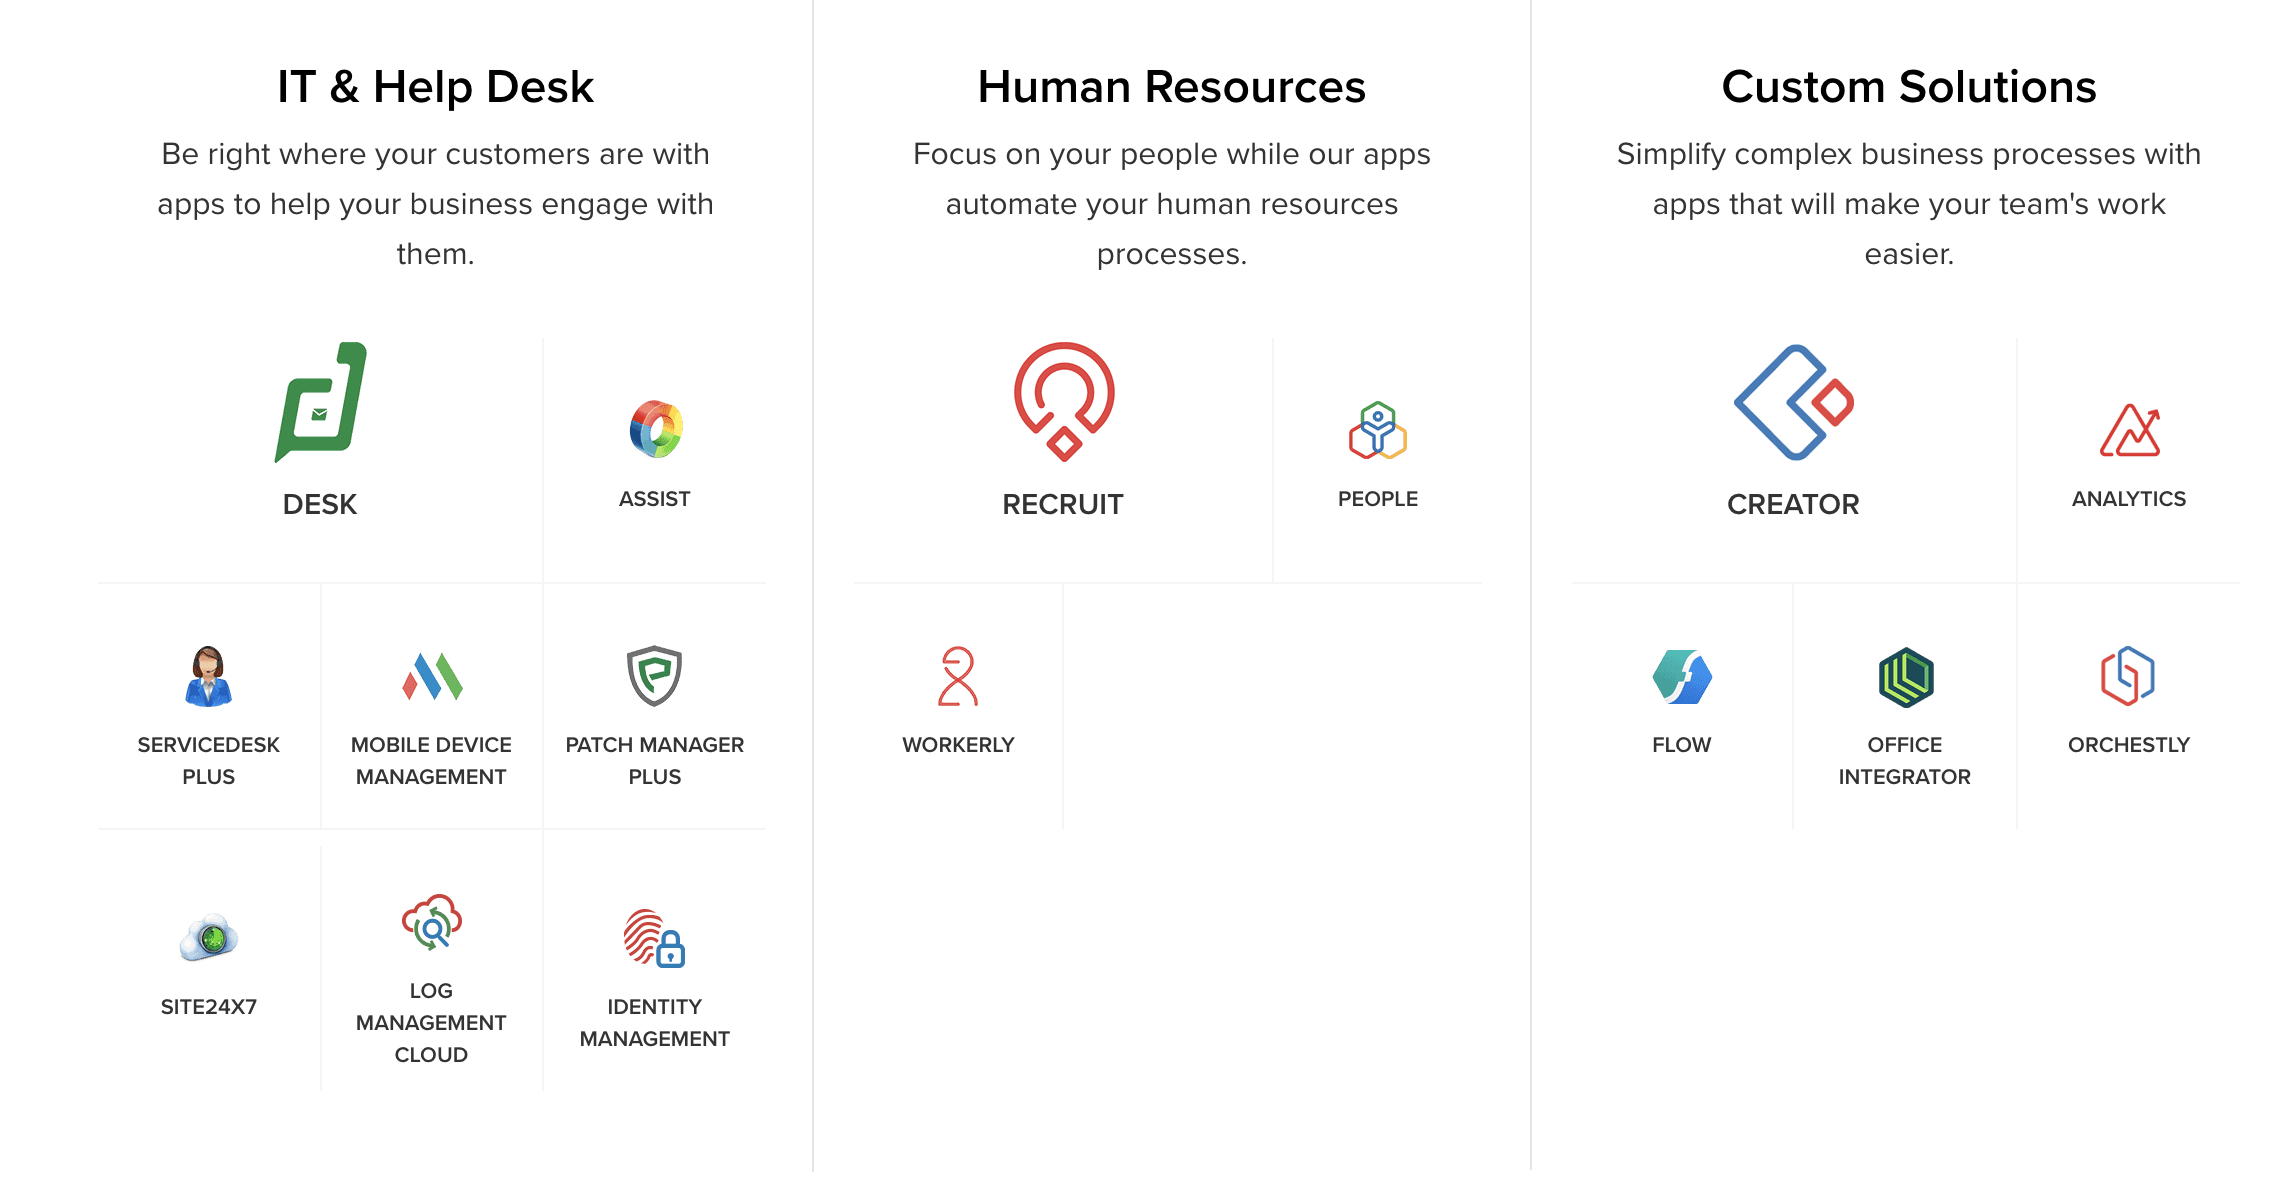 Apps in IT & Help Desk, Human Resources, and Custom Solutions.